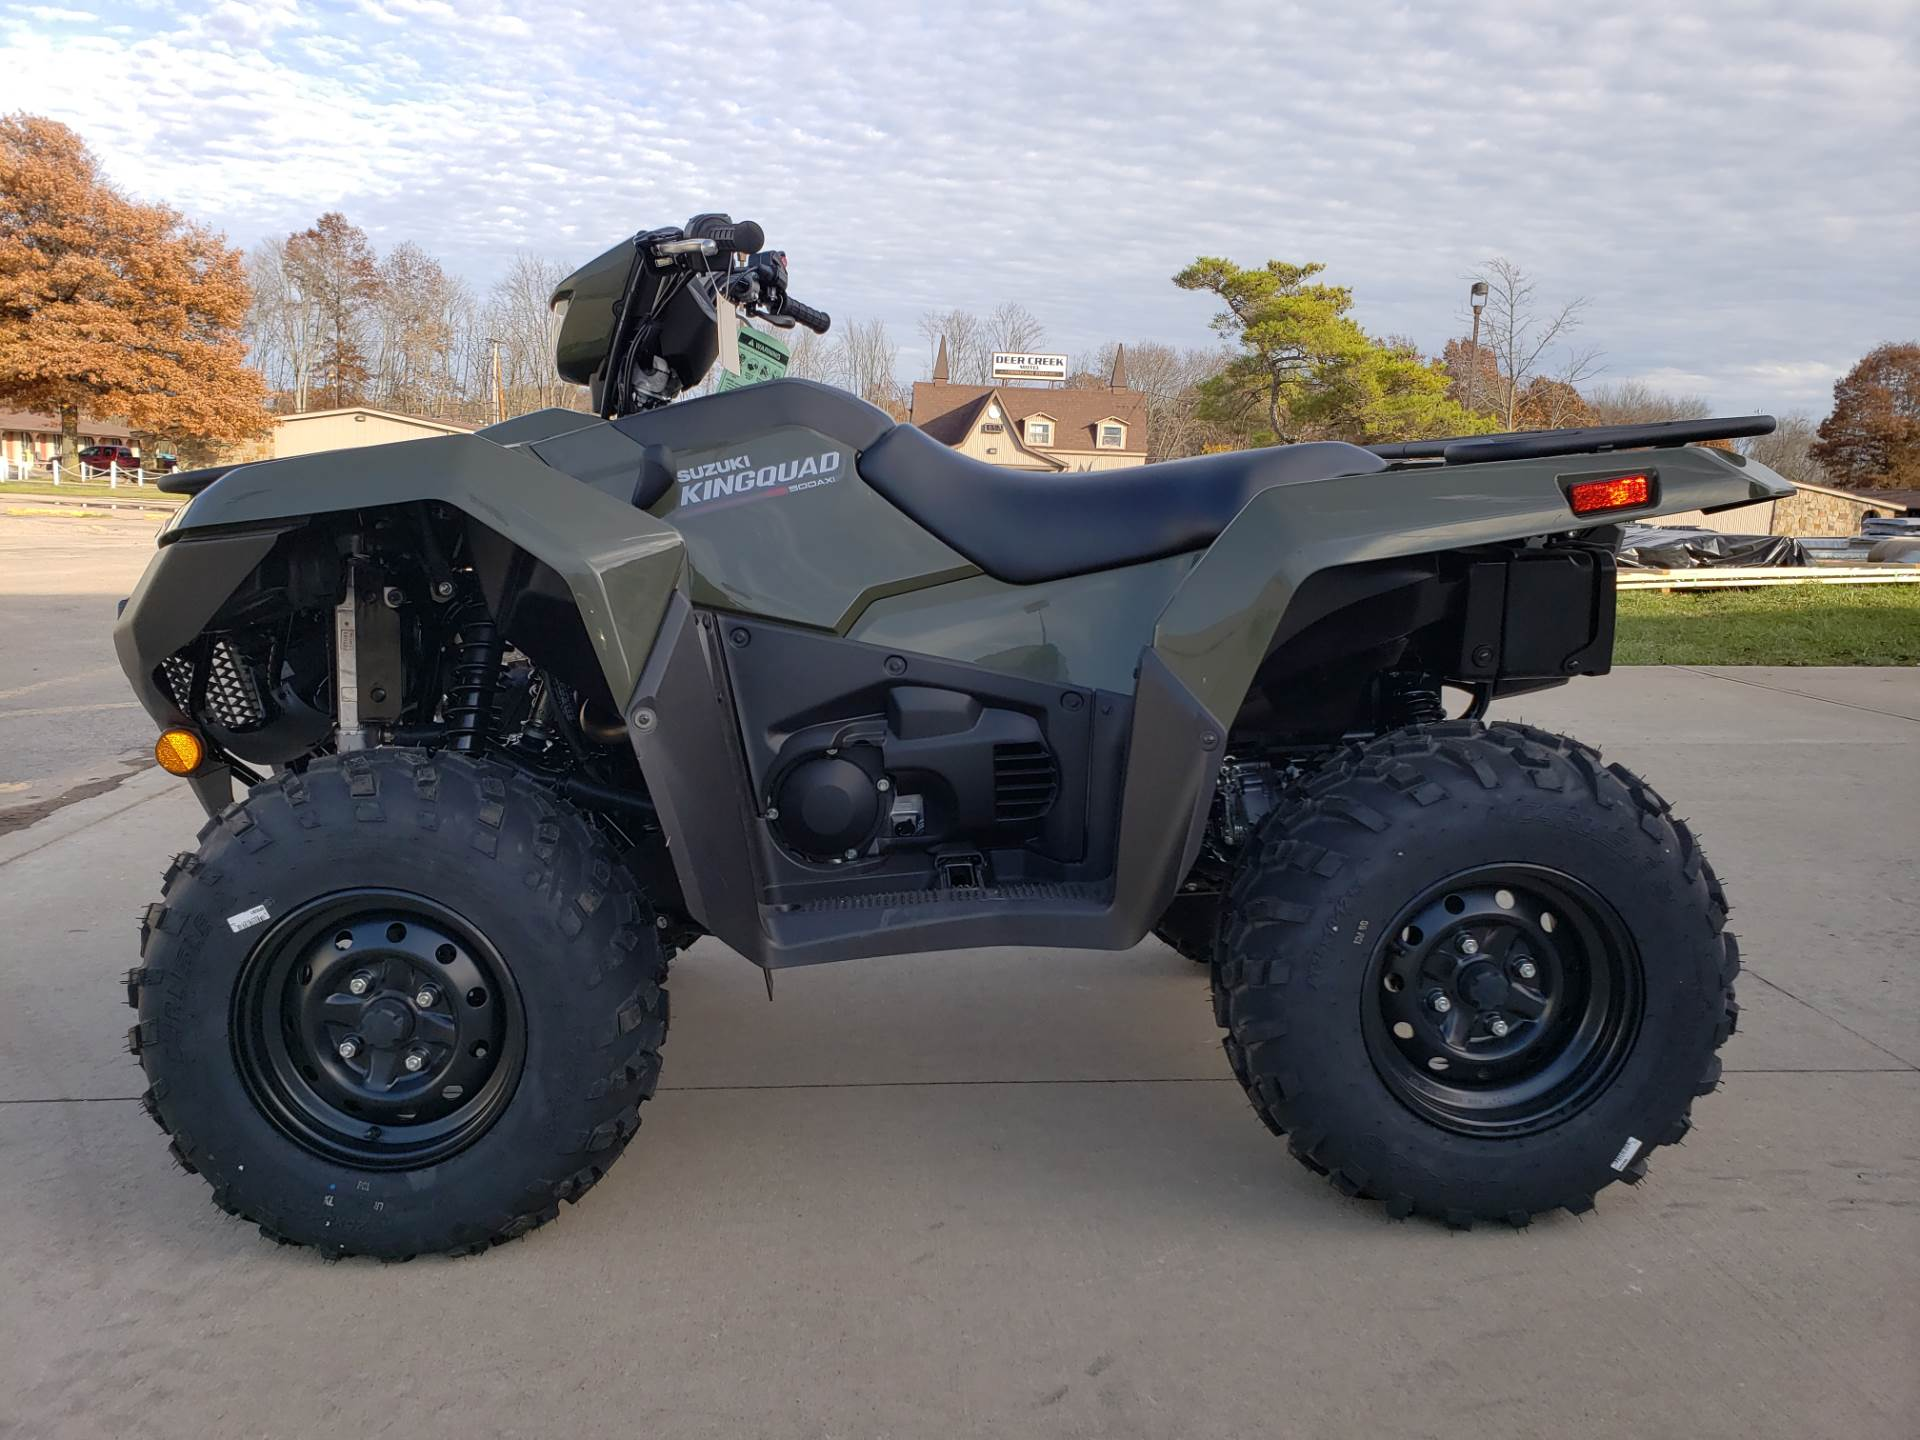 2019 Suzuki KingQuad 500AXi Power Steering 5